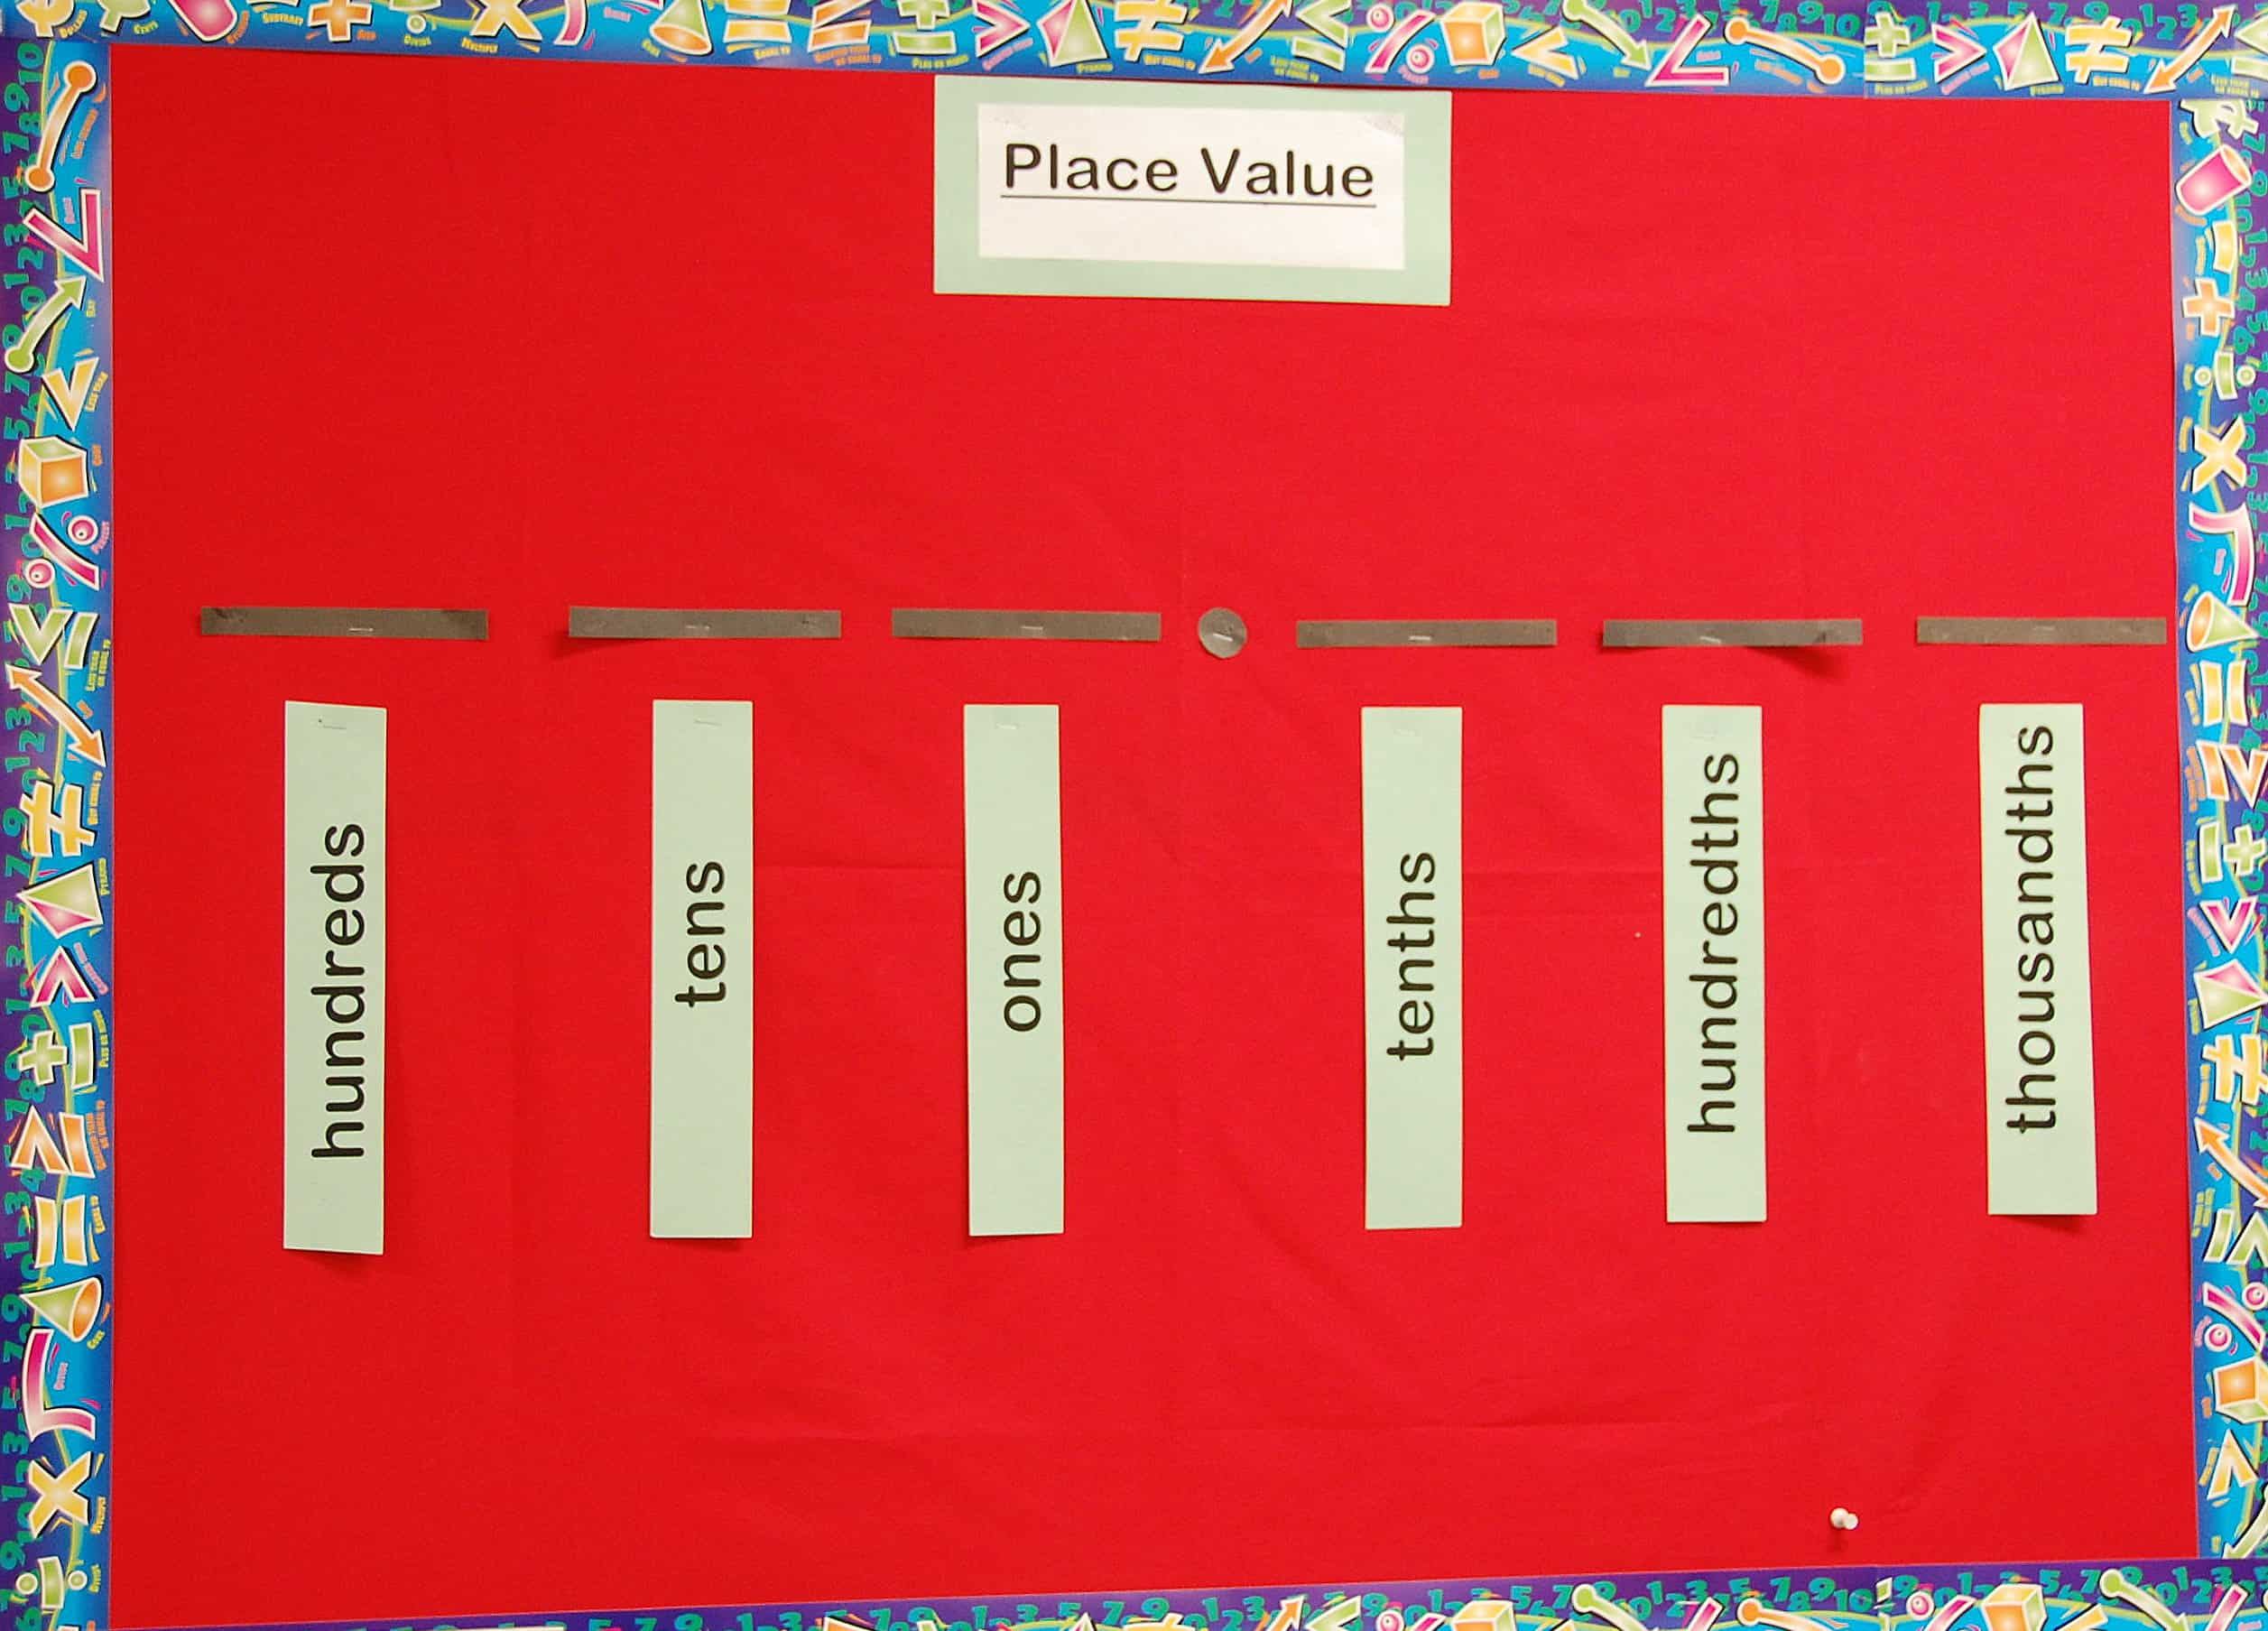 Place Value Singaporemathsource